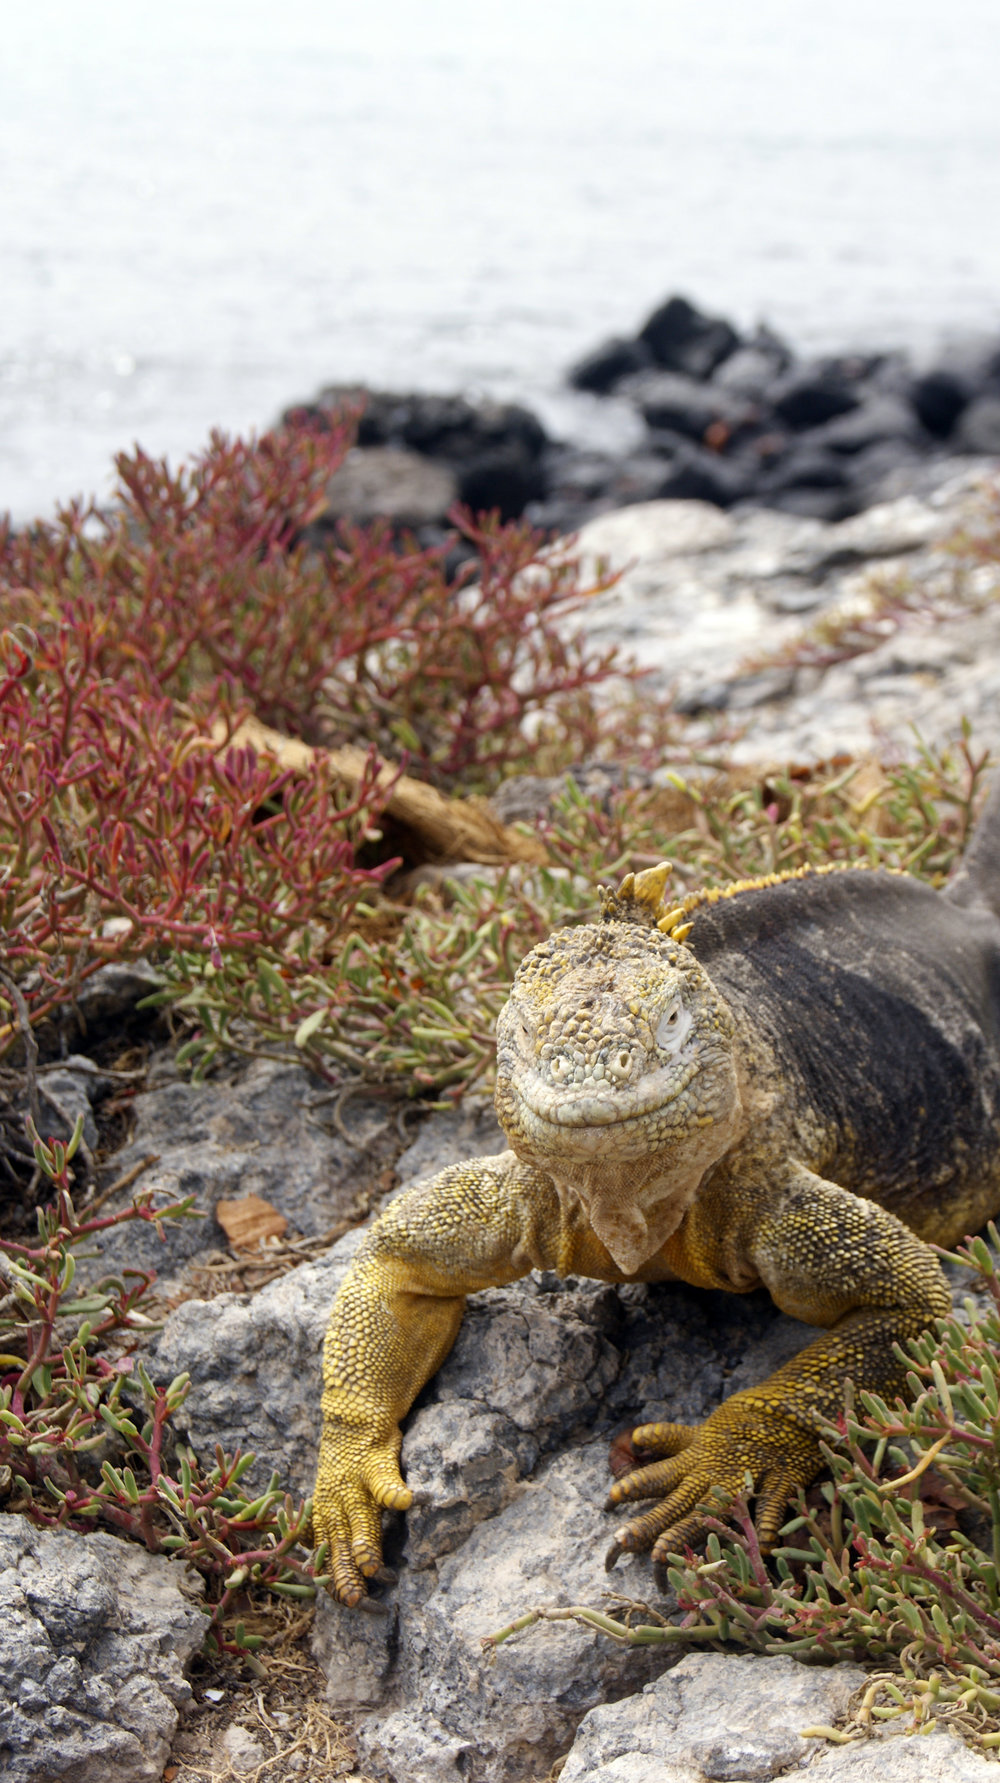 Click on the image above to find out more about our luxury wilderness holidays to the Galapagos Islands.